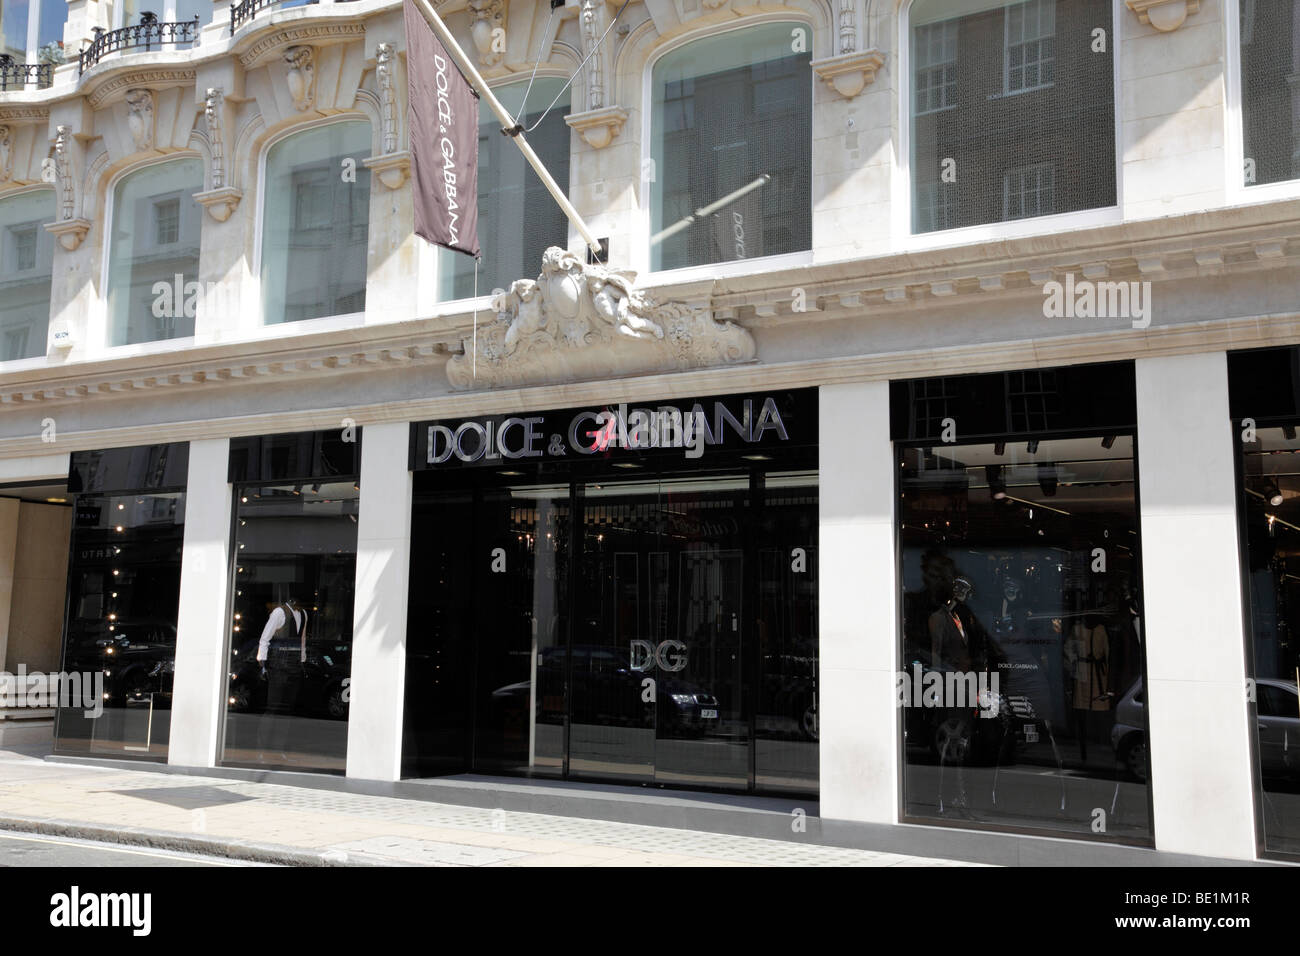 exterior of the dolce & gabbana store on old bond street mayfair london uk - Stock Image